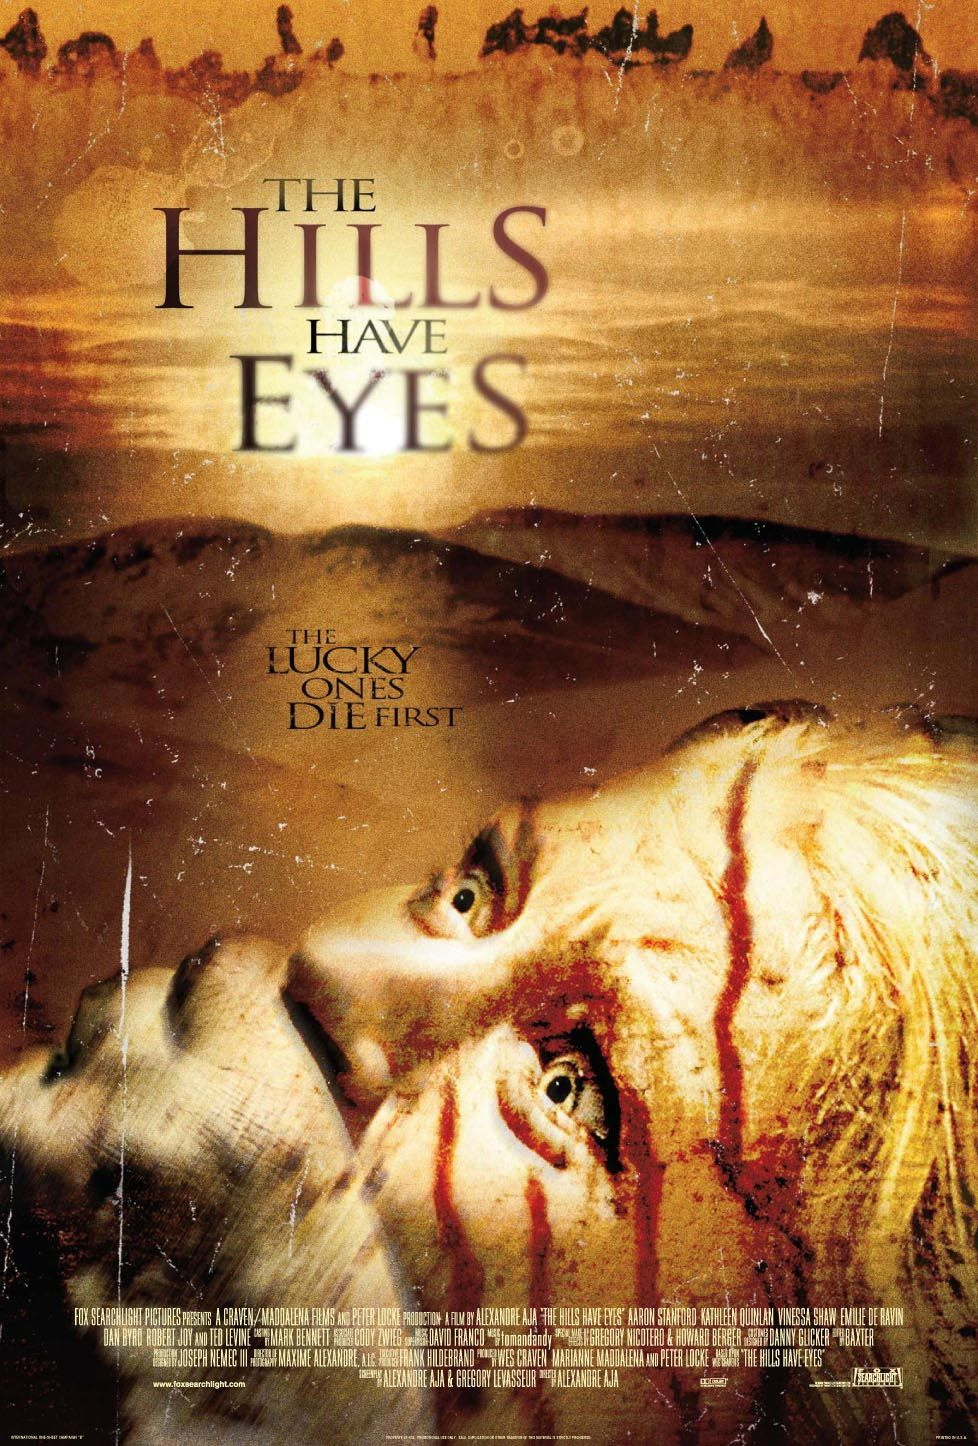 Tepenin Gözleri – The Hills Have Eyes (2006)